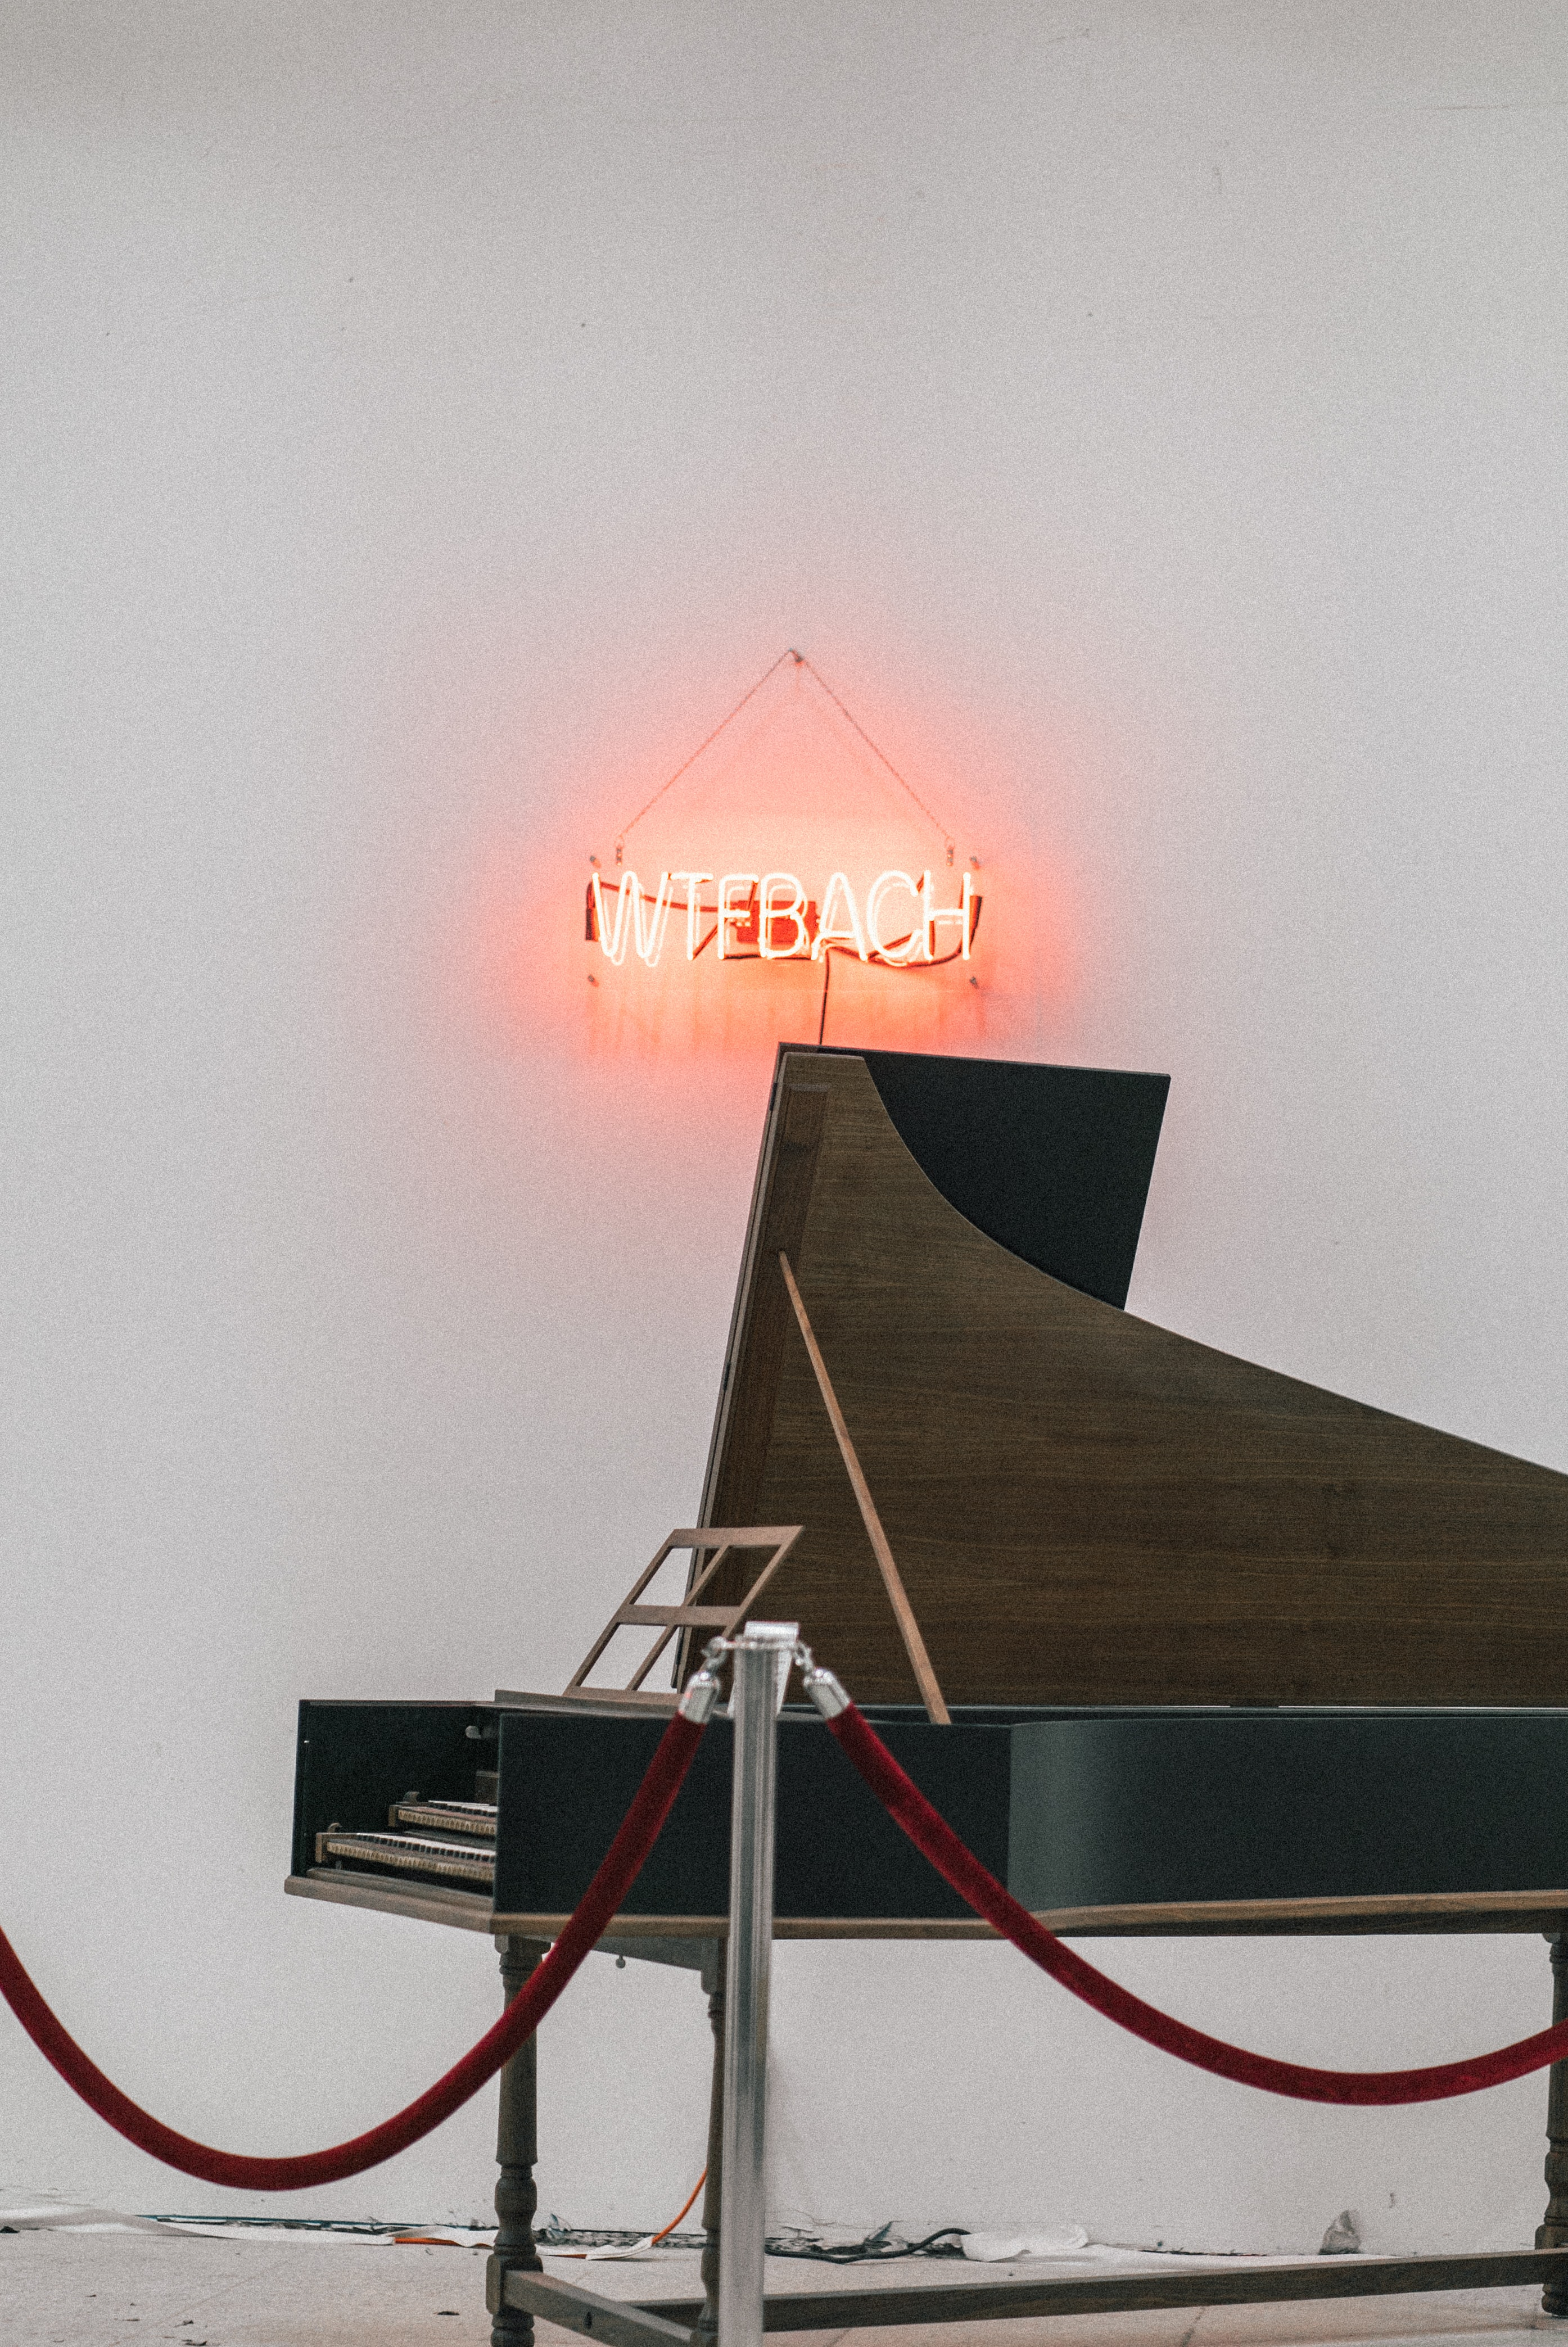 brown and black grand piano near white wall with turned-on neon signage